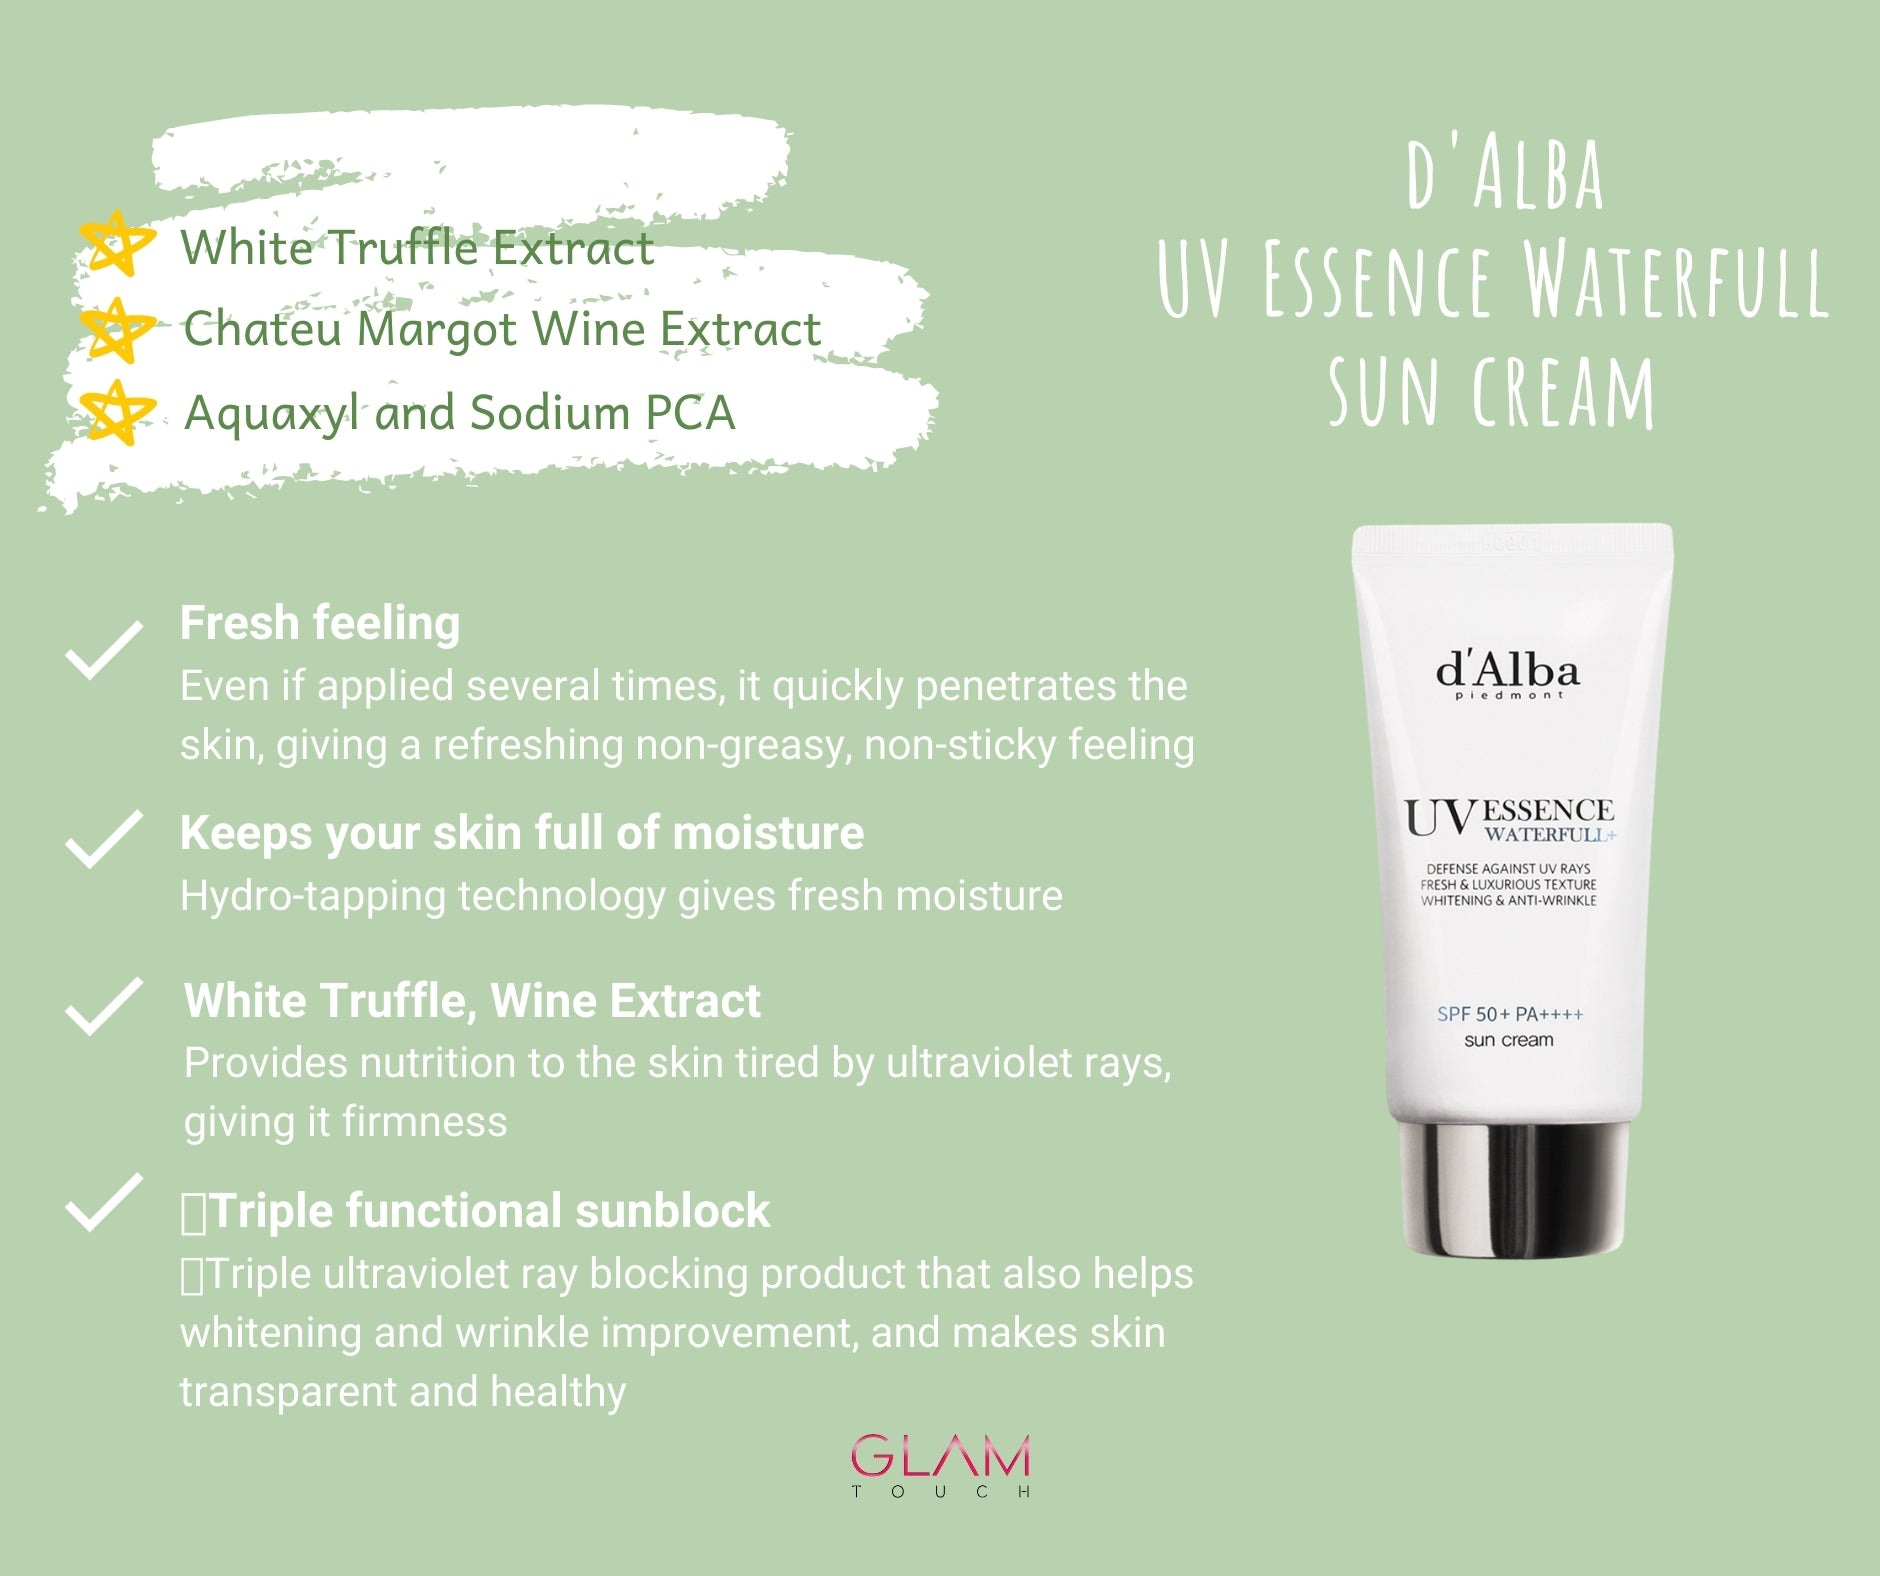 d'Alba UV Essence Waterfull Suncream (50ml) SPF 50+ PA++++ Glam Touch UK